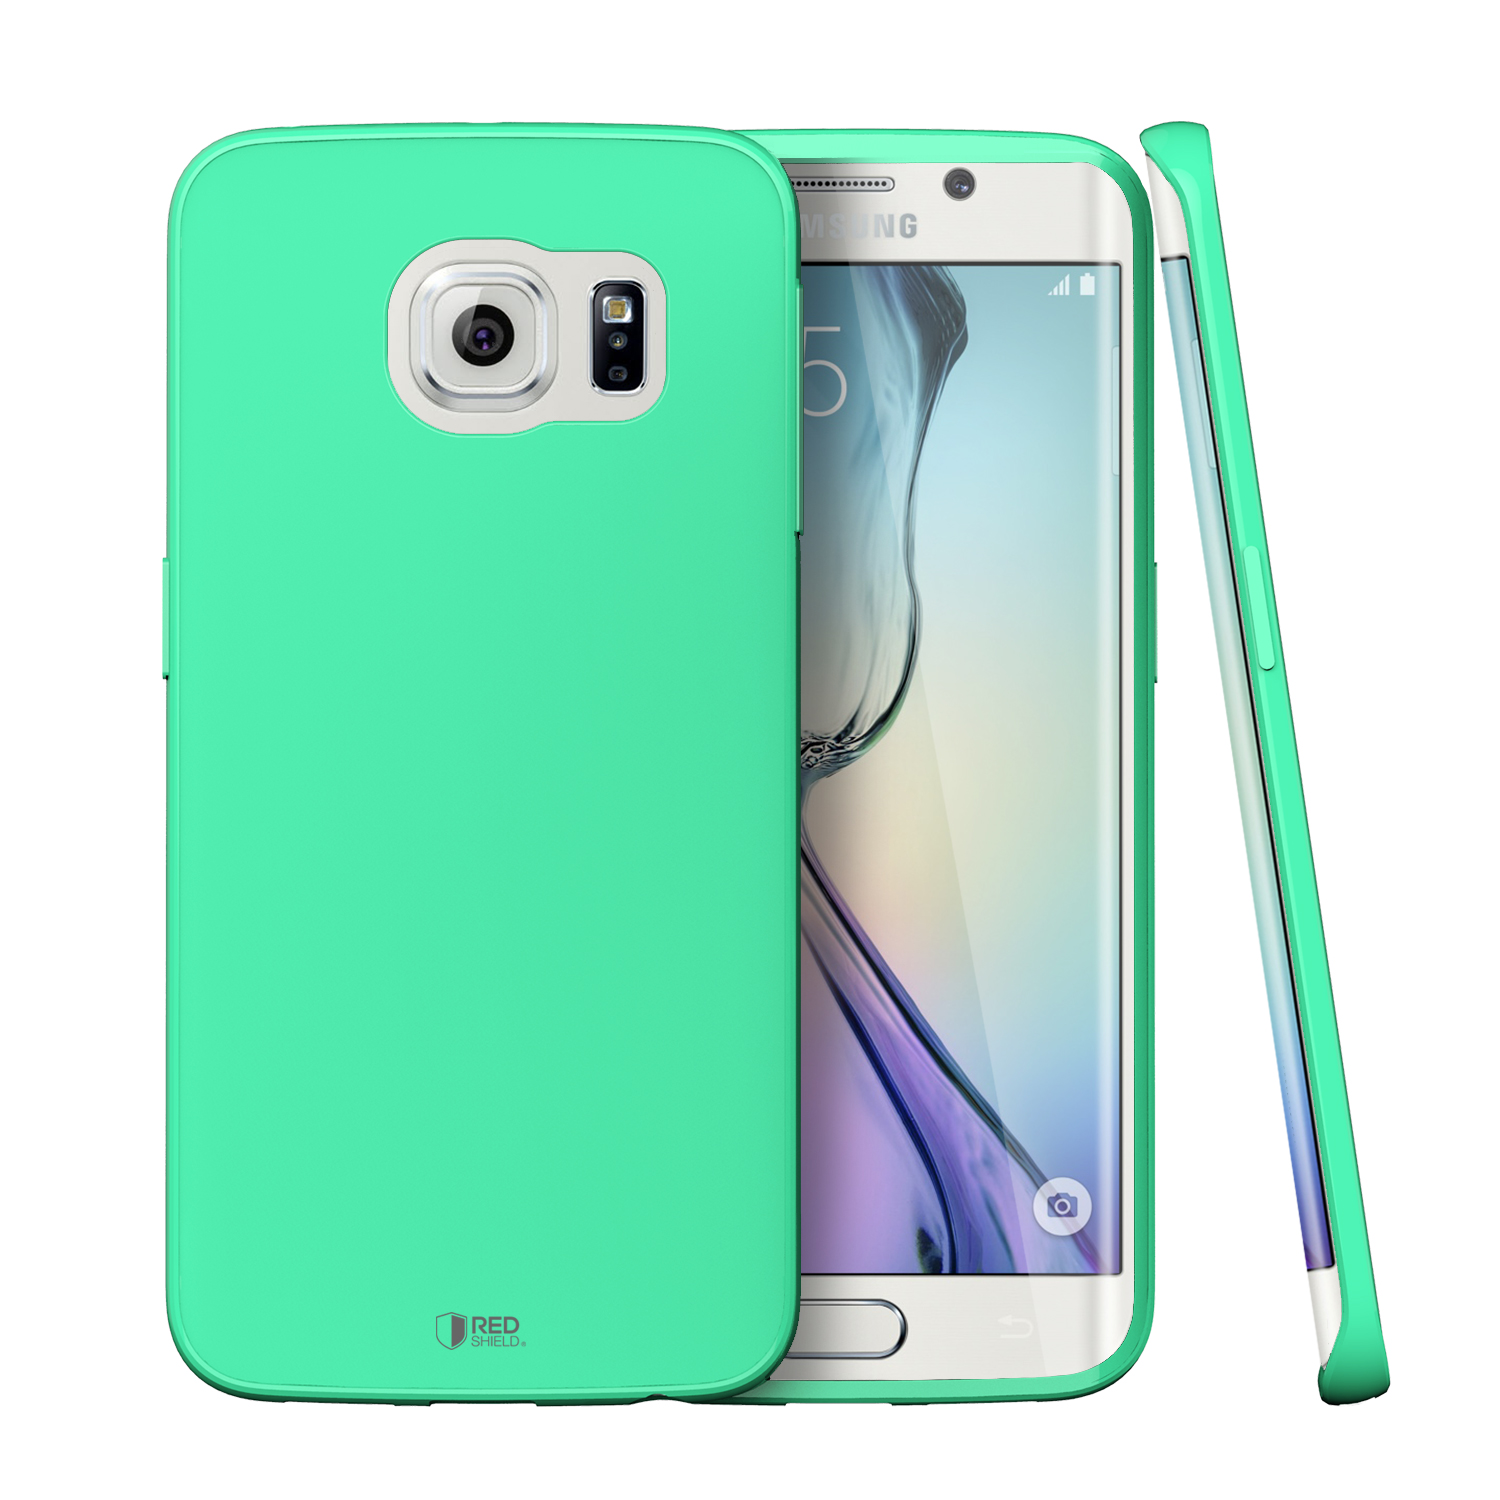 huge selection of c5b7b 1afed Samsung Galaxy S6 Edge Case [Fresh Mint] Slim & Flexible Anti-shock Crystal  Silicone Protective TPU Gel Skin Case Cover